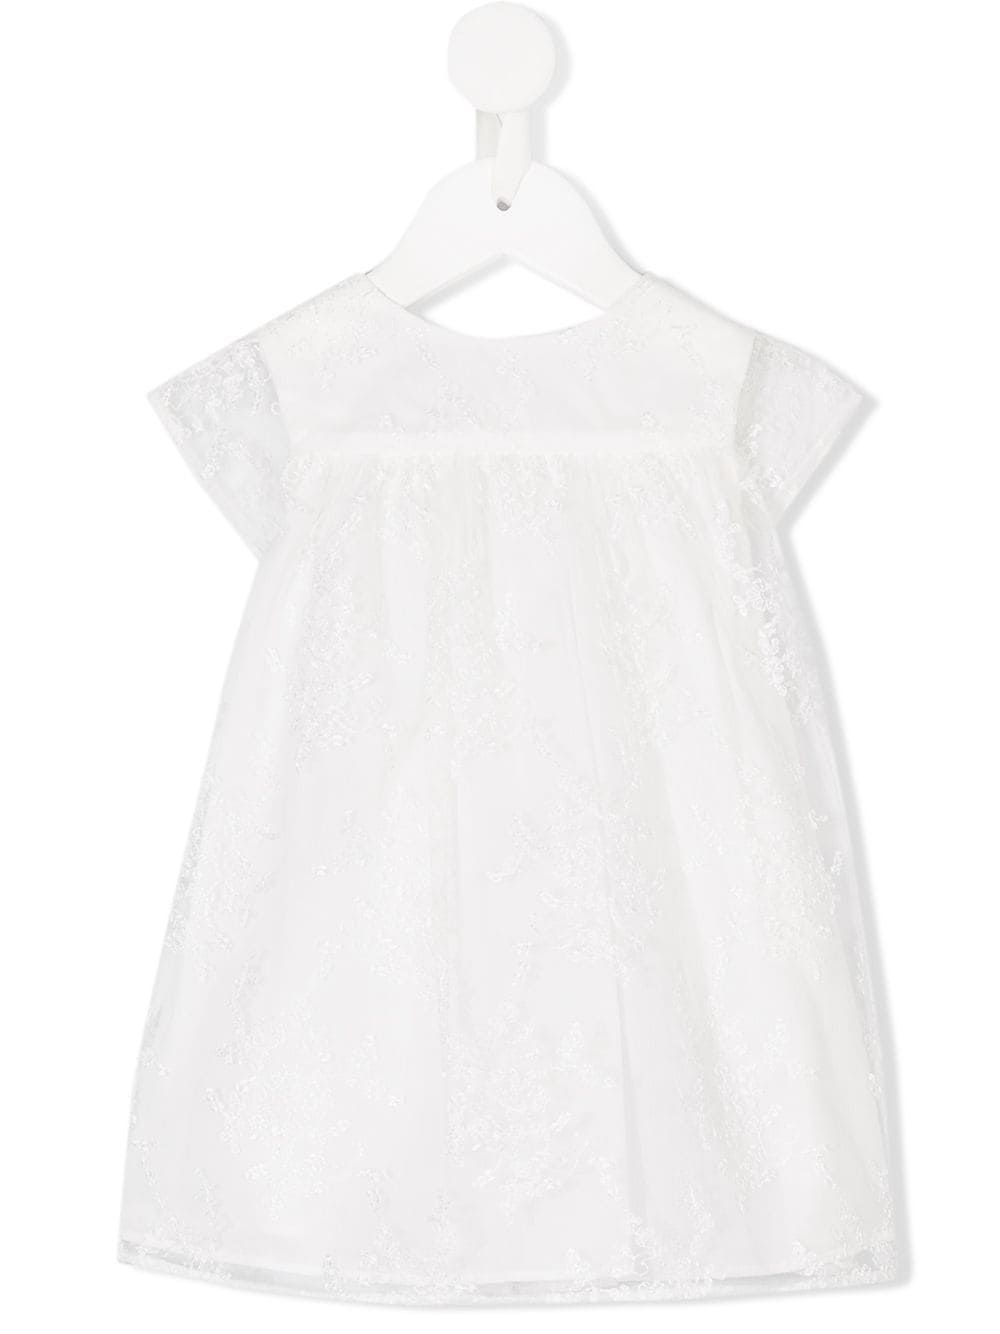 White Ana dress from Knot.